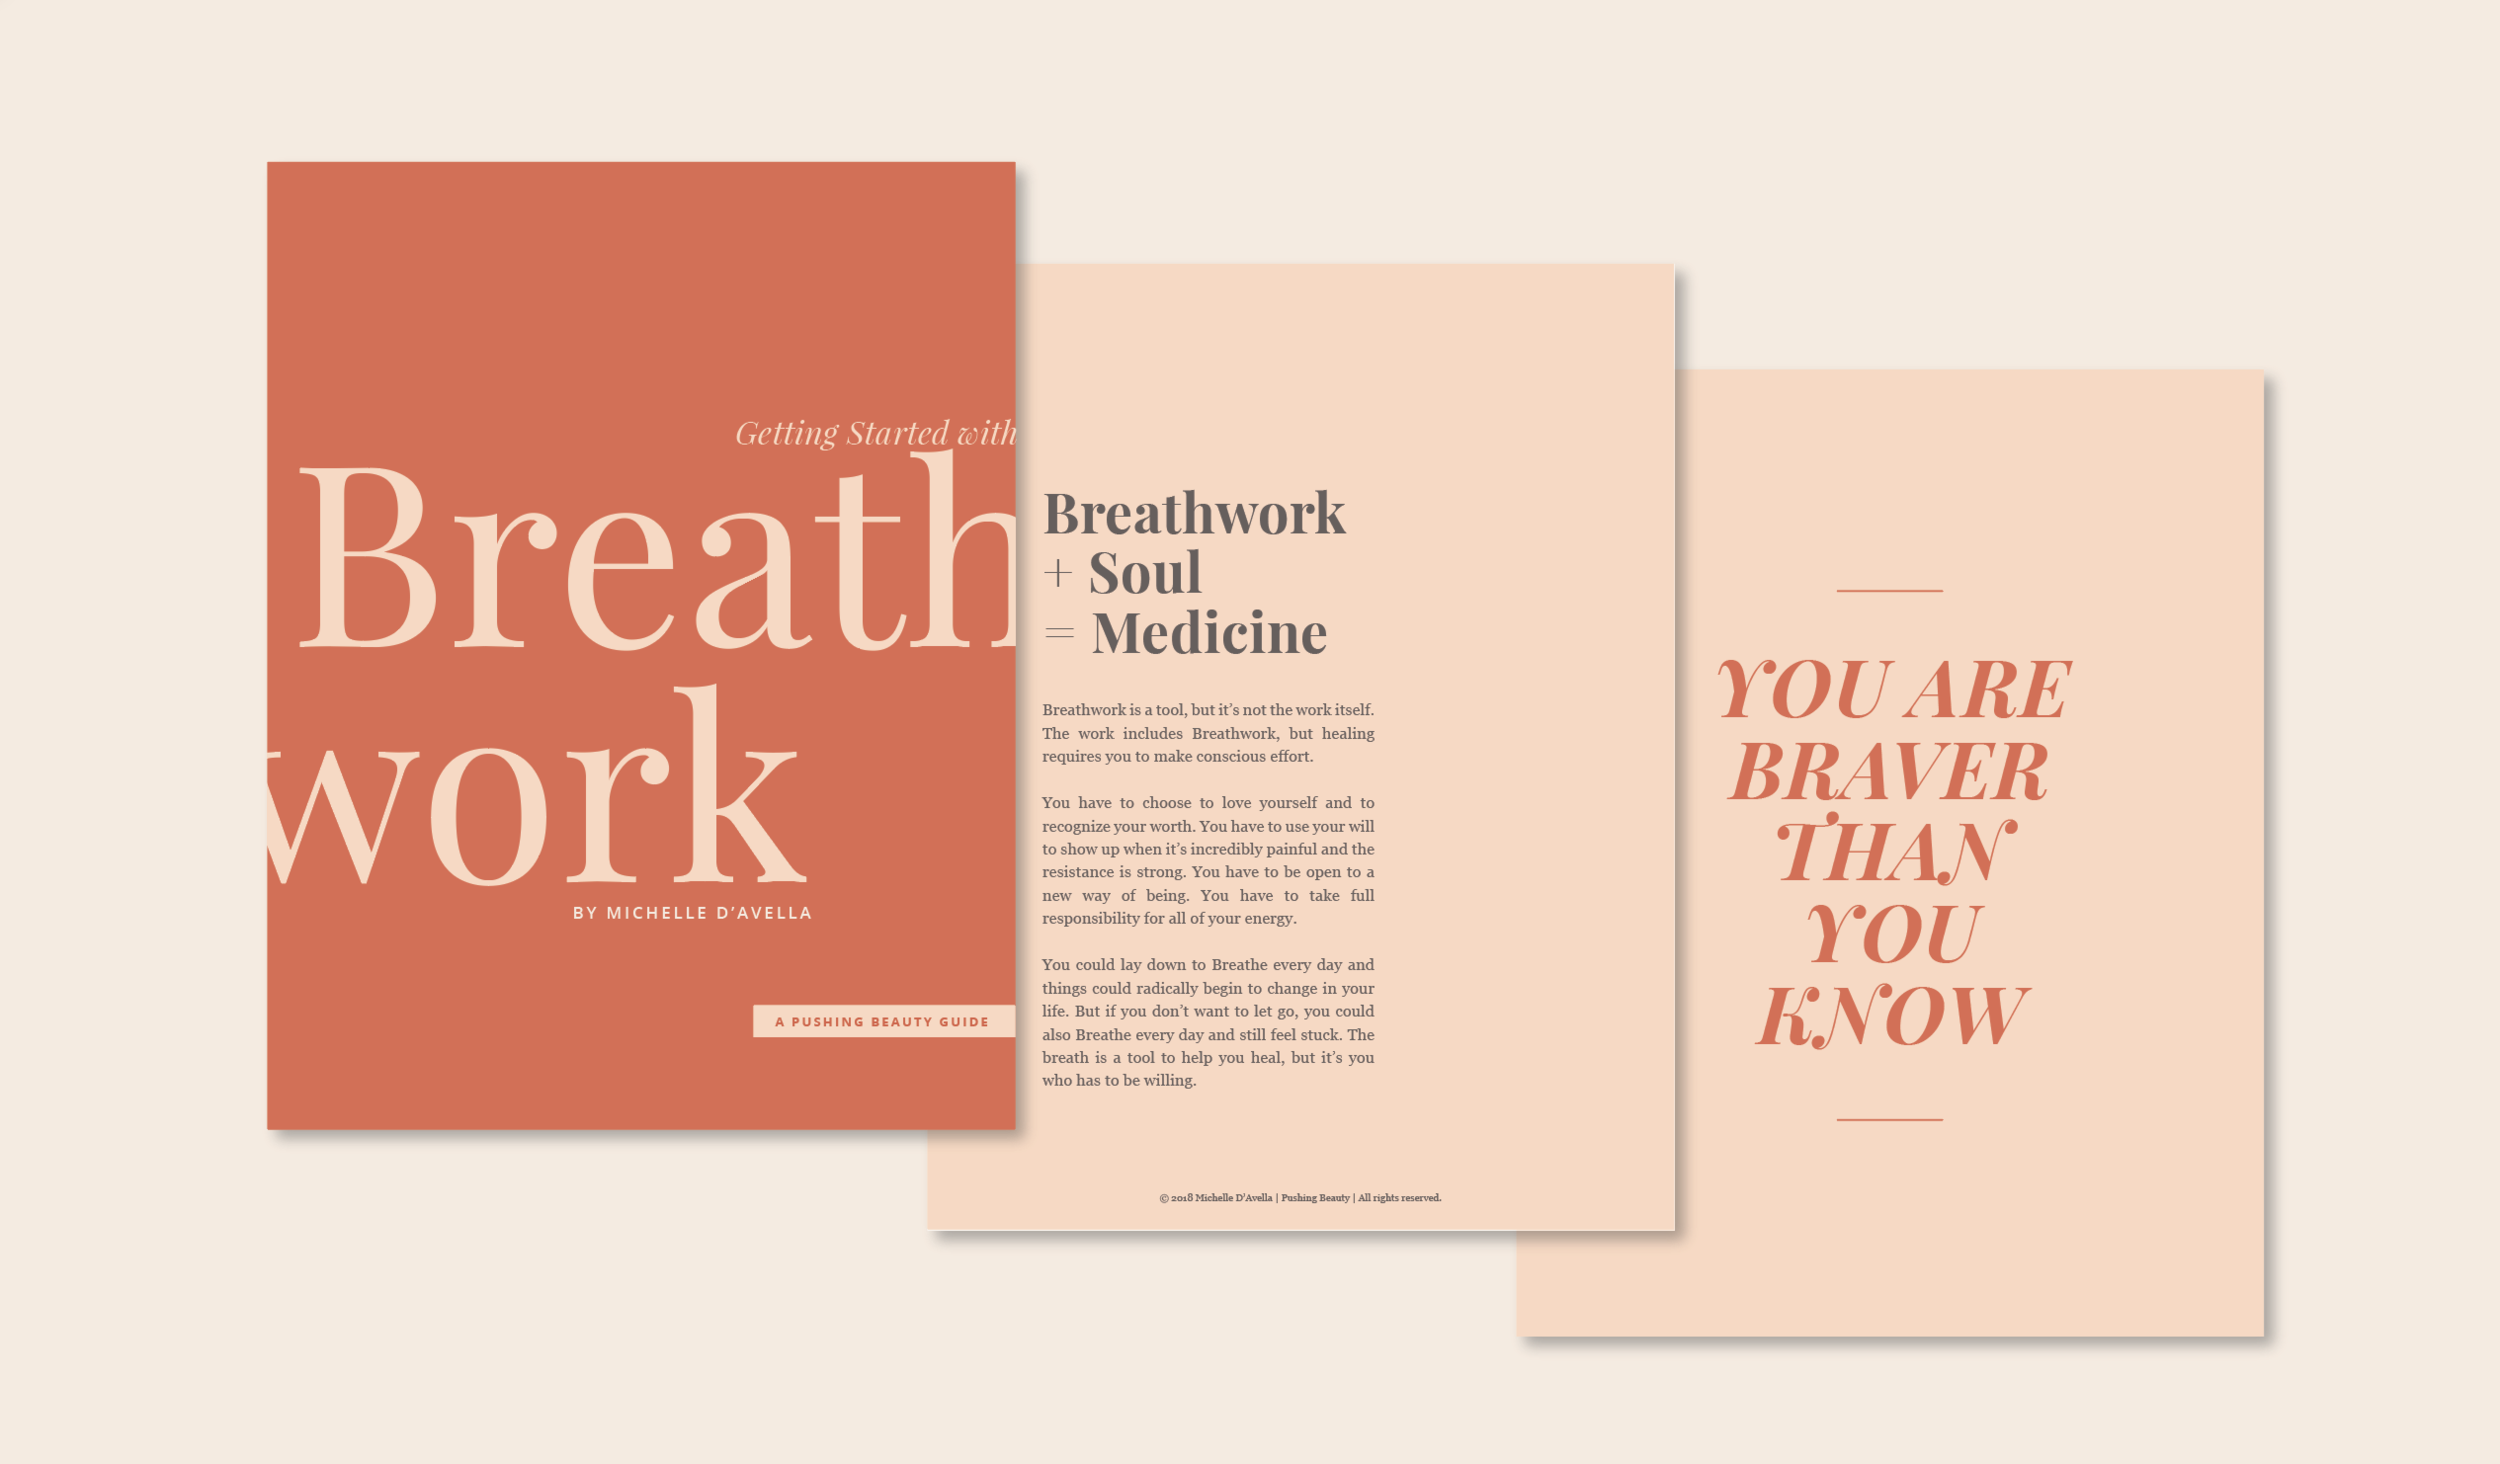 Getting Started with Breathwork